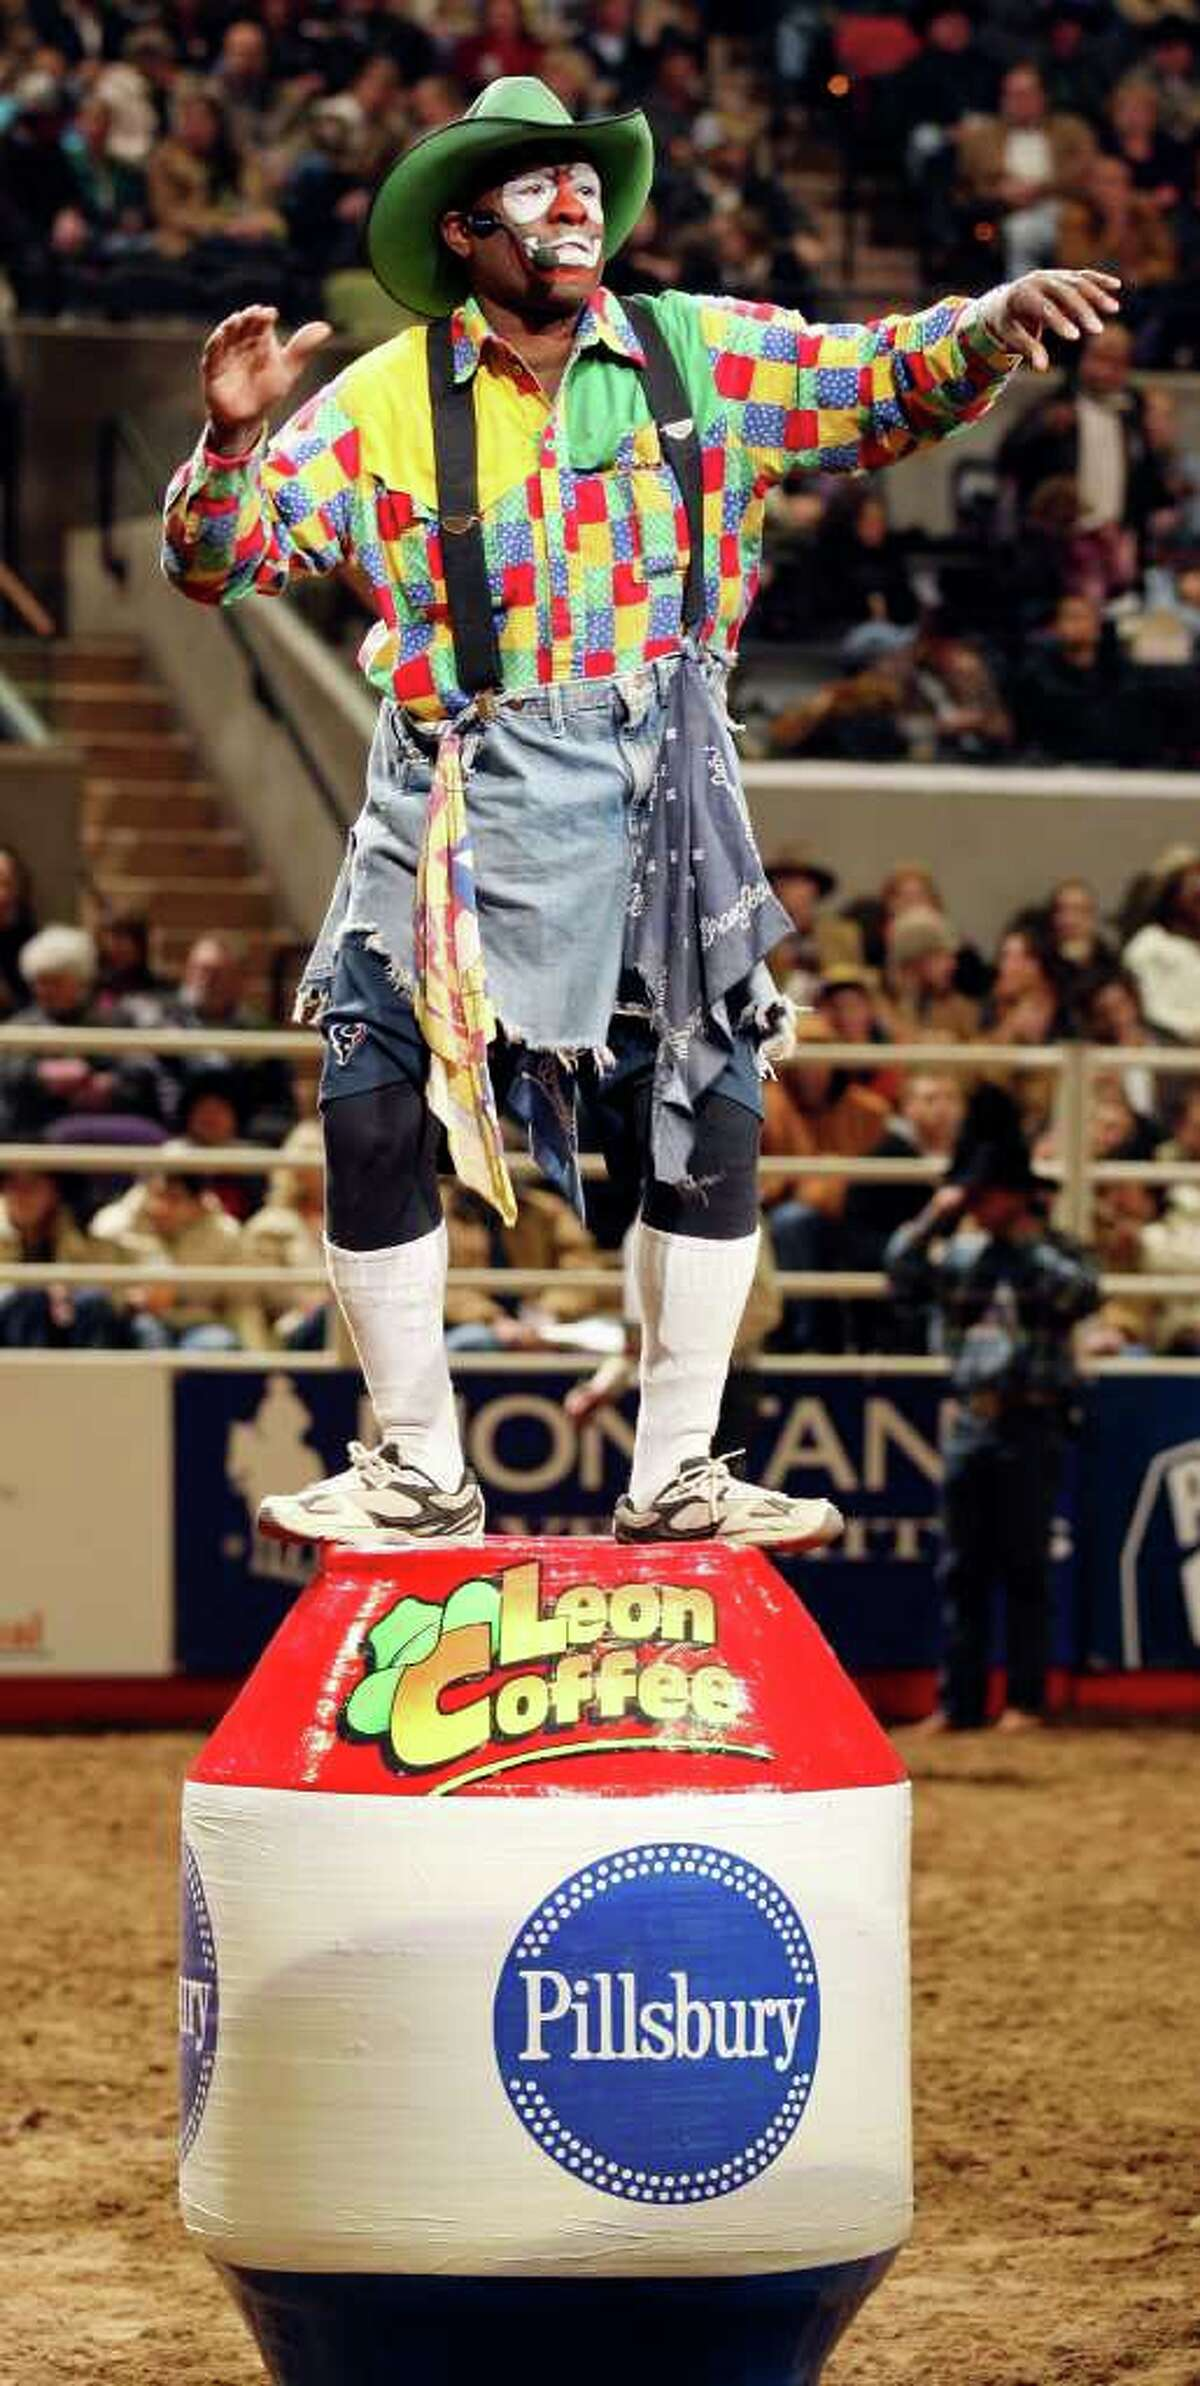 Barrelman Leon Coffee, from Wimberly, performs during the Xtreme Bulls event on Thursday, Feb. 3, 2011, during the San Antonio Stock Show & Rodeo at the AT&T Center.